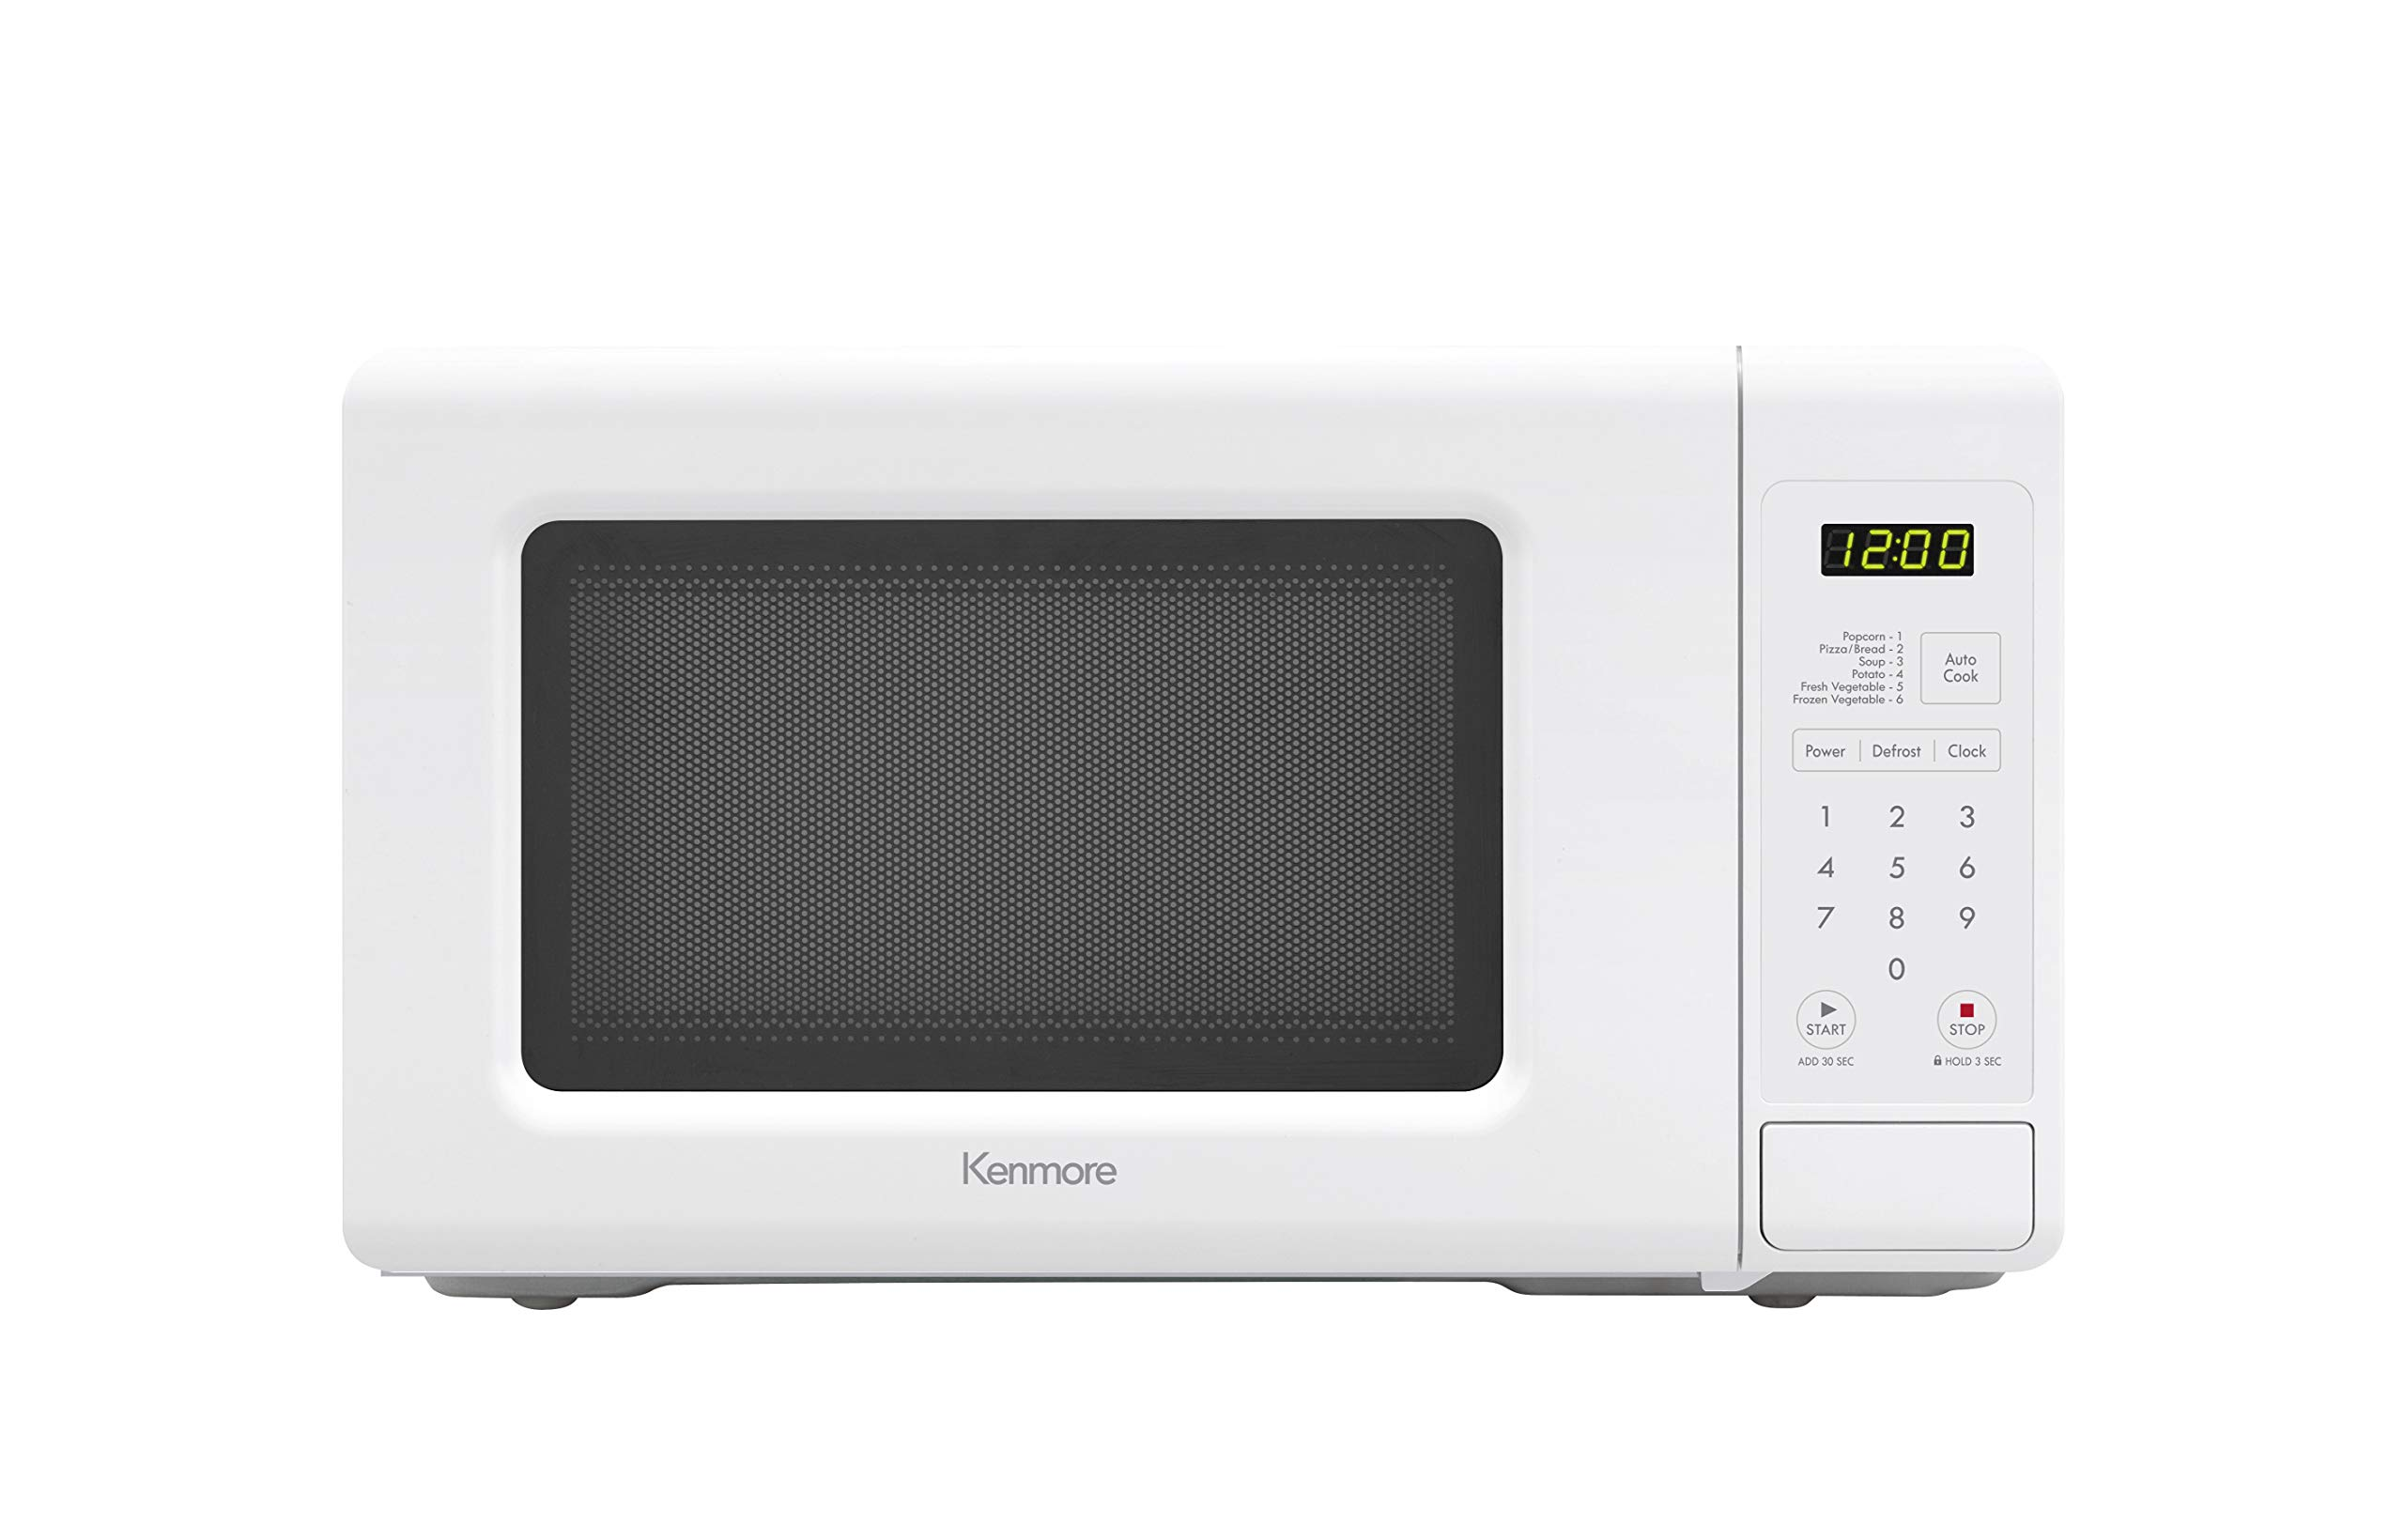 Kenmore 70722 0.7 cu. ft Compact 700 Watts 10 Power Settings, 6 Heating Presets, Removable Turntable, ADA Compliant Small Countertop Microwave, cu.ft, White by Kenmore